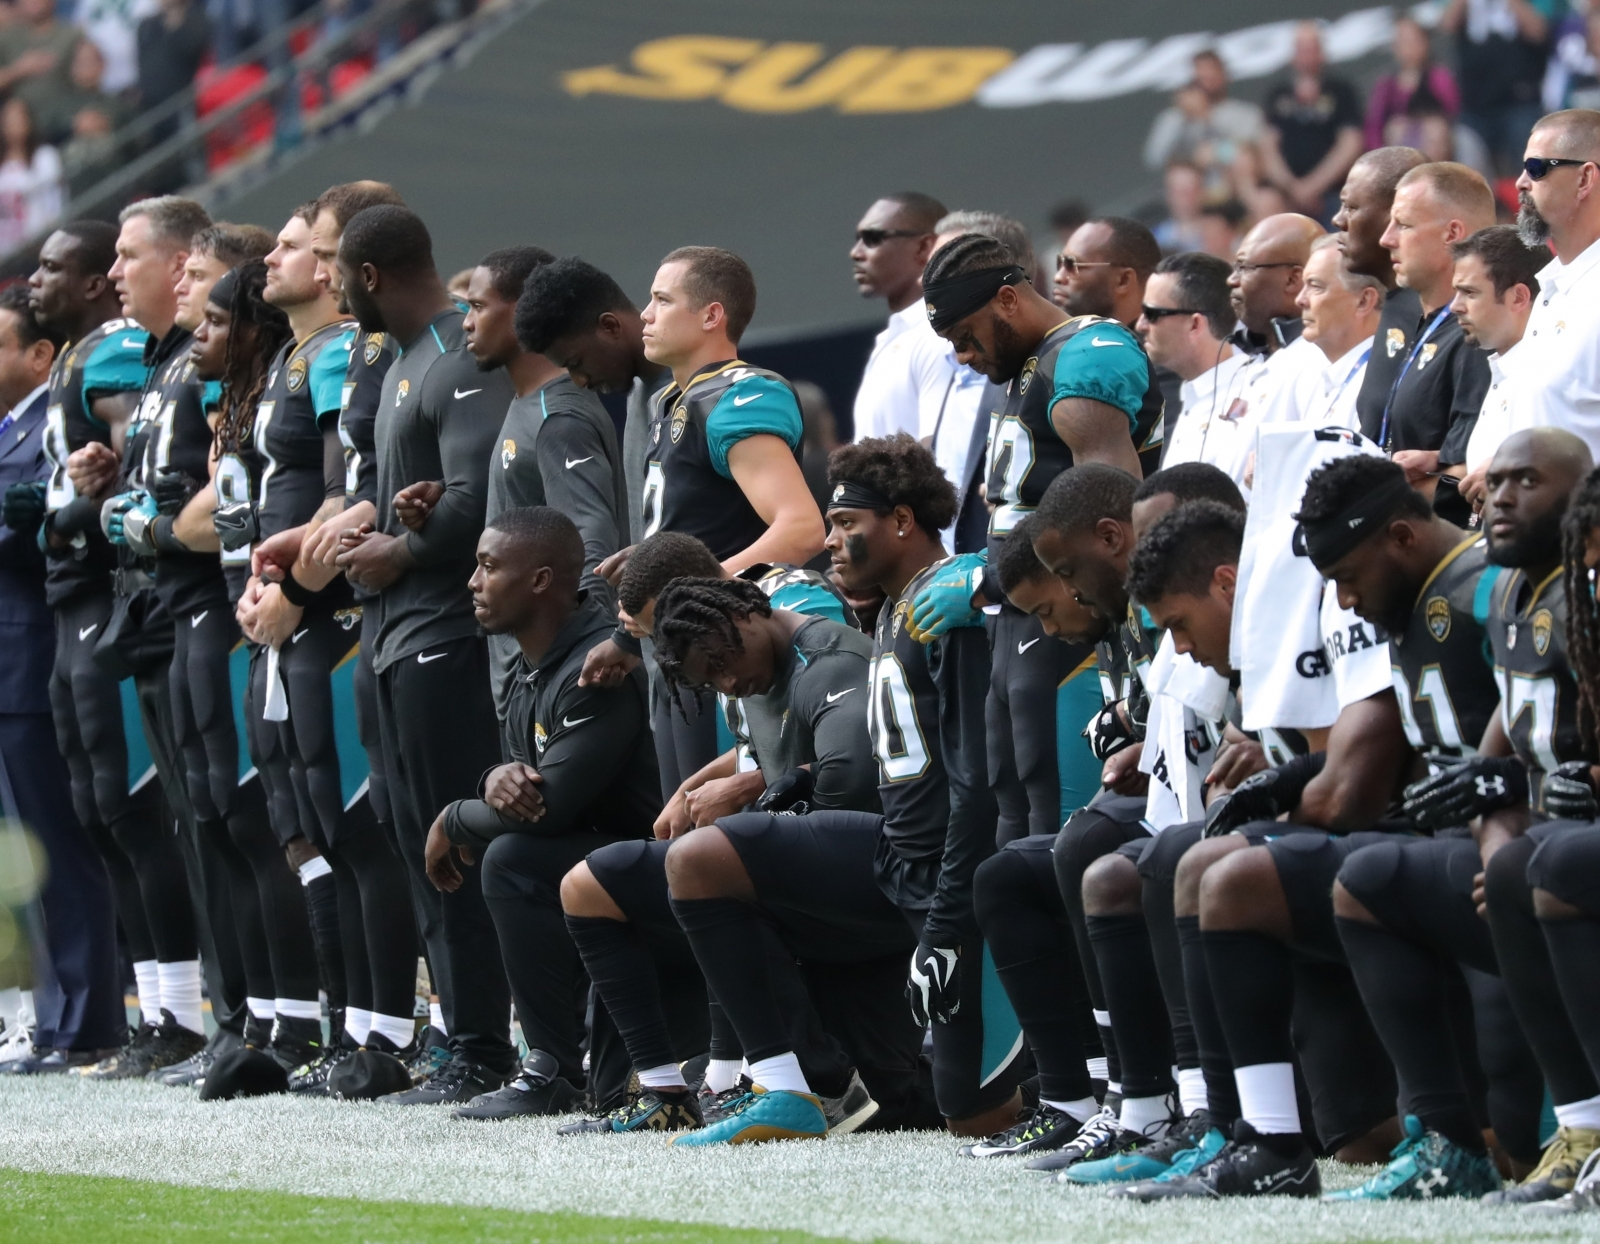 Reactions to Trump's comments on NFL player protests